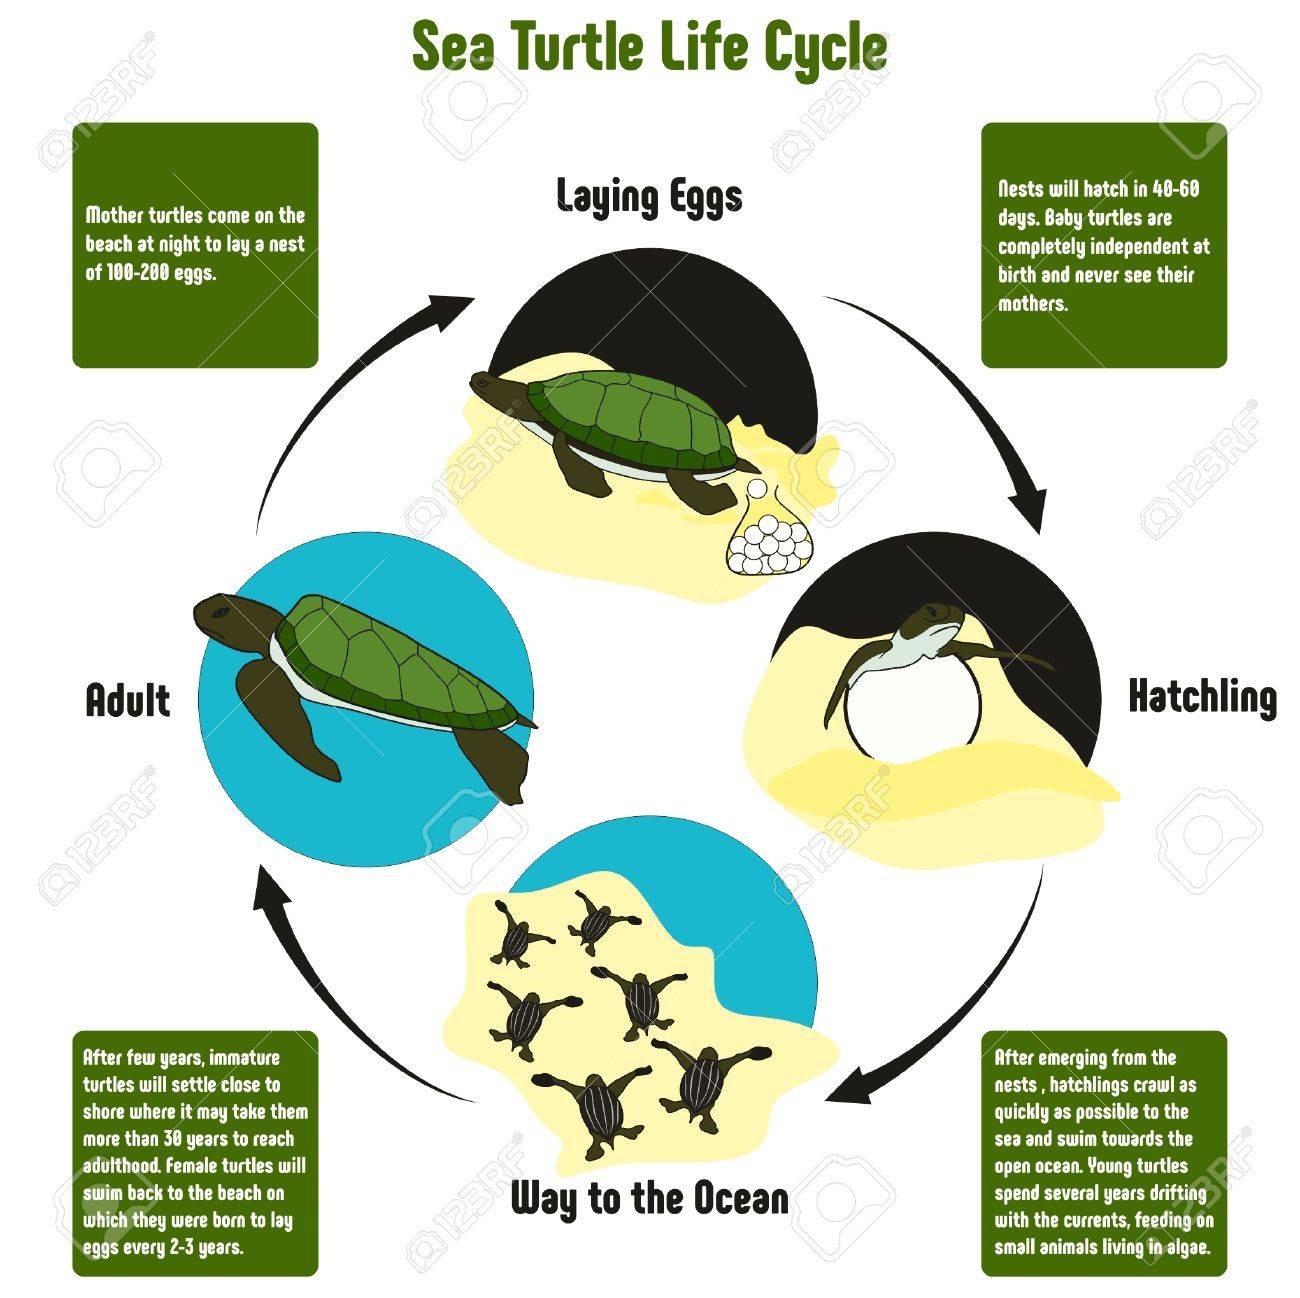 Sea Turtle Life Cycle Diagram With All Stages Including Laying ...